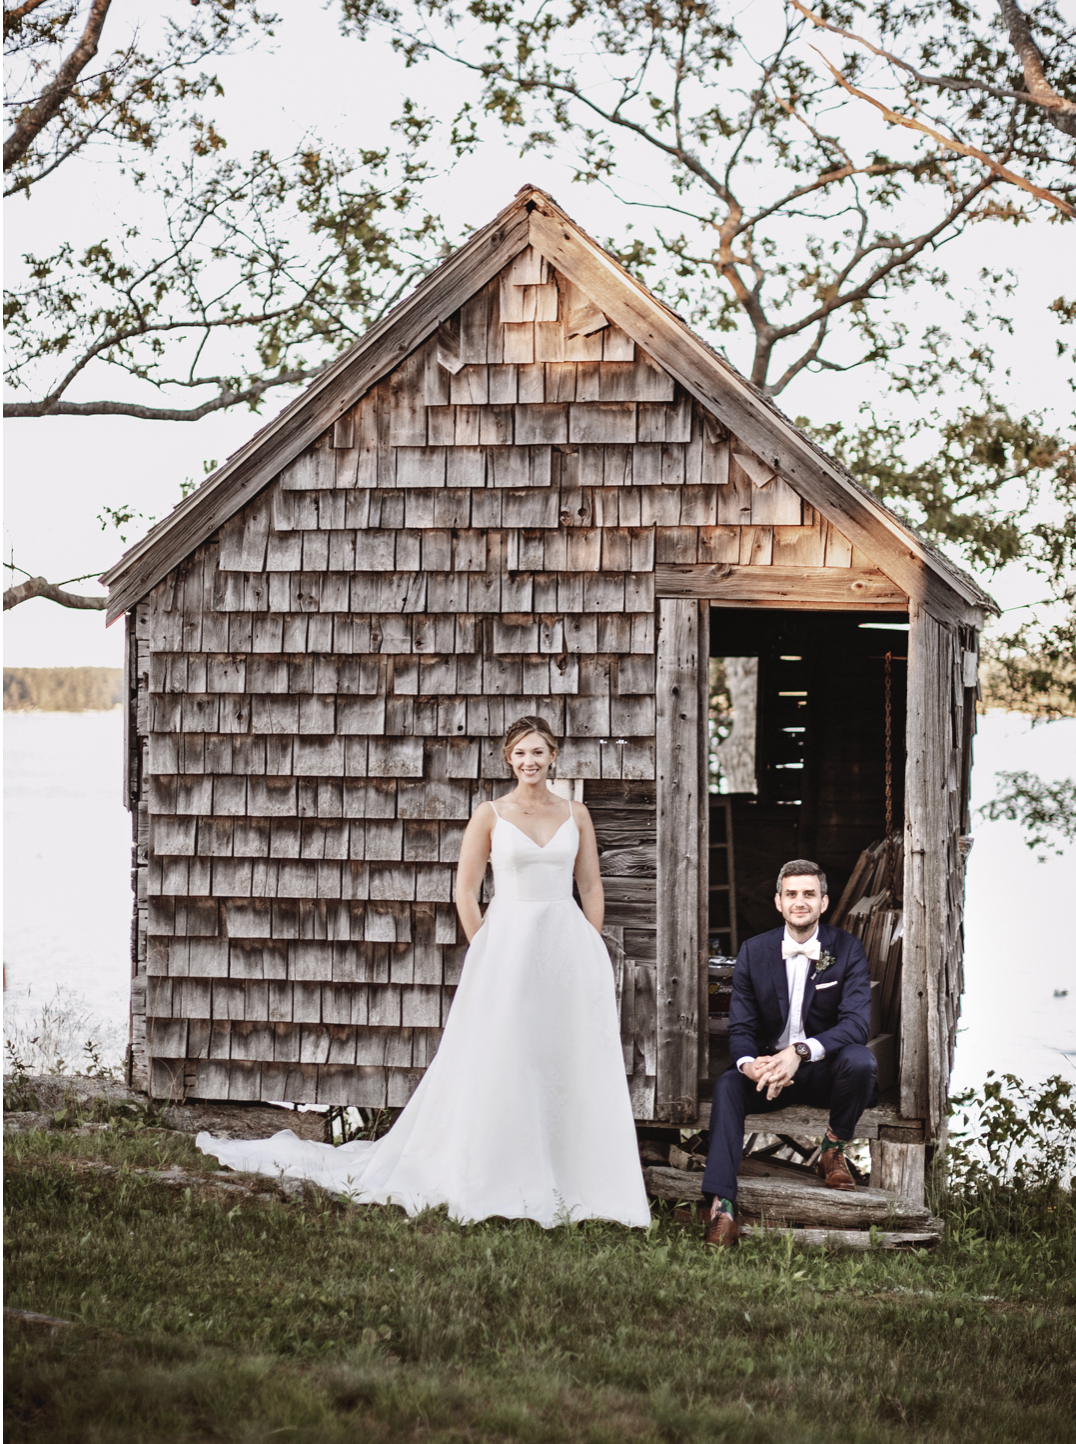 Emily and Jason, Harpswell, Maine.